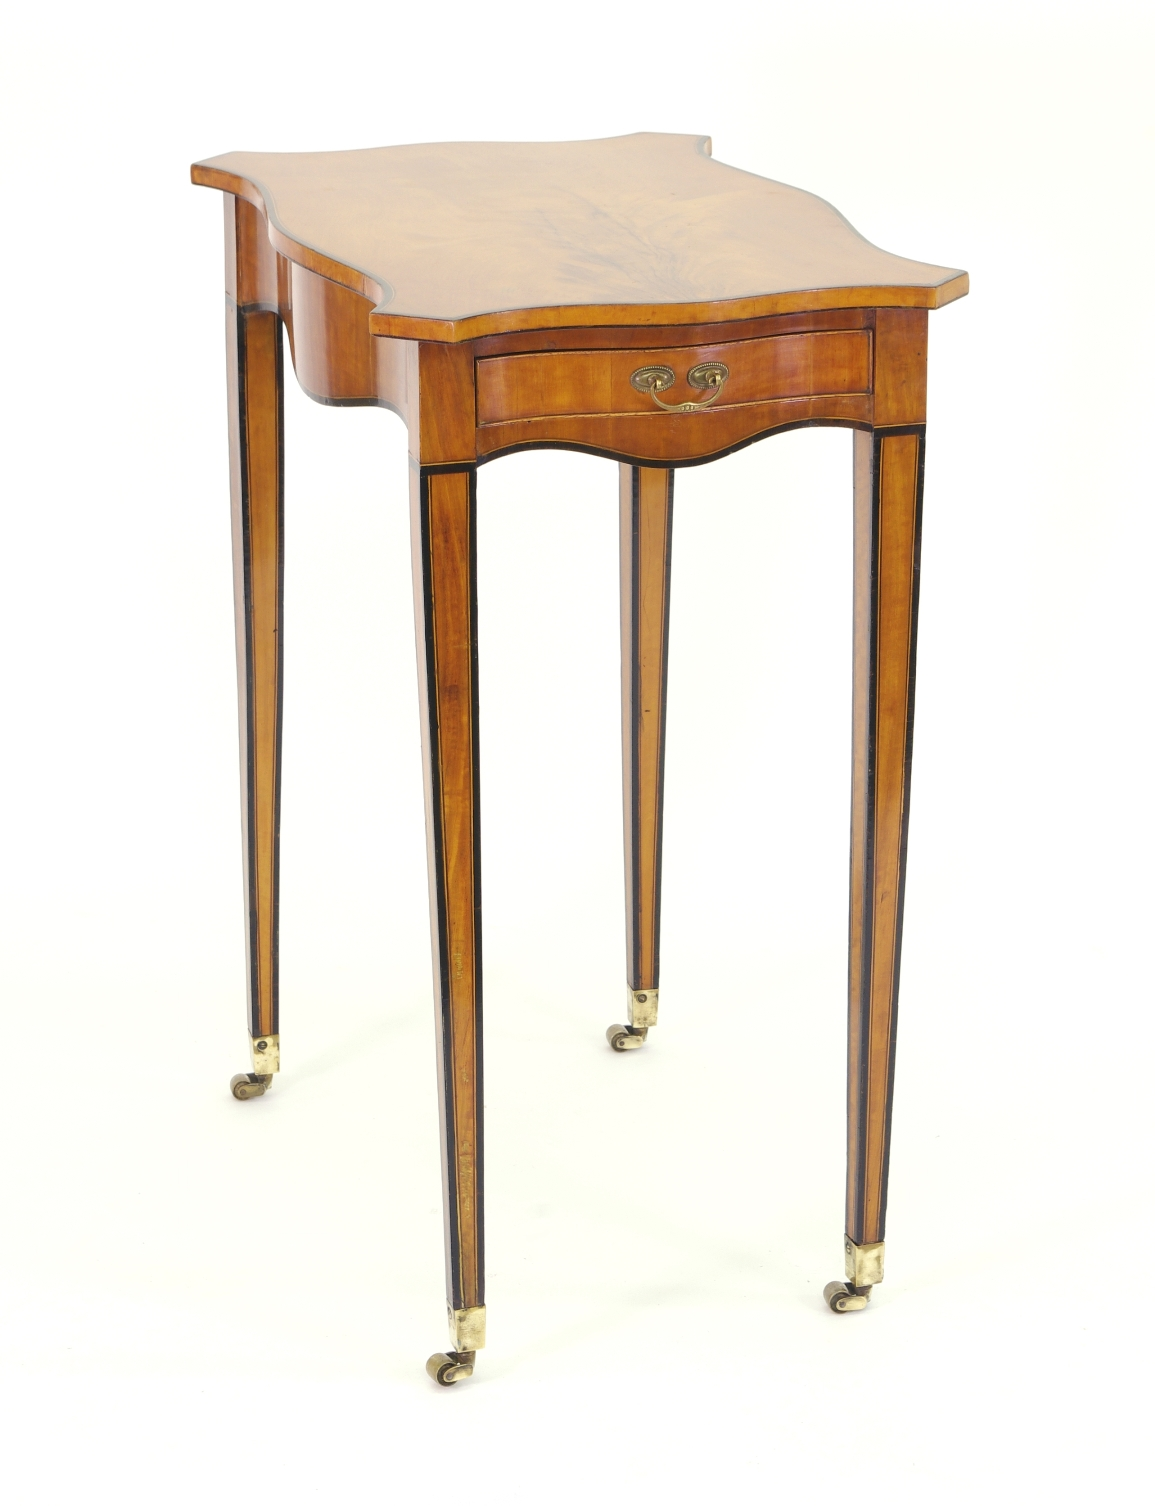 View 2: George III Satinwood Side Table, c. 1790